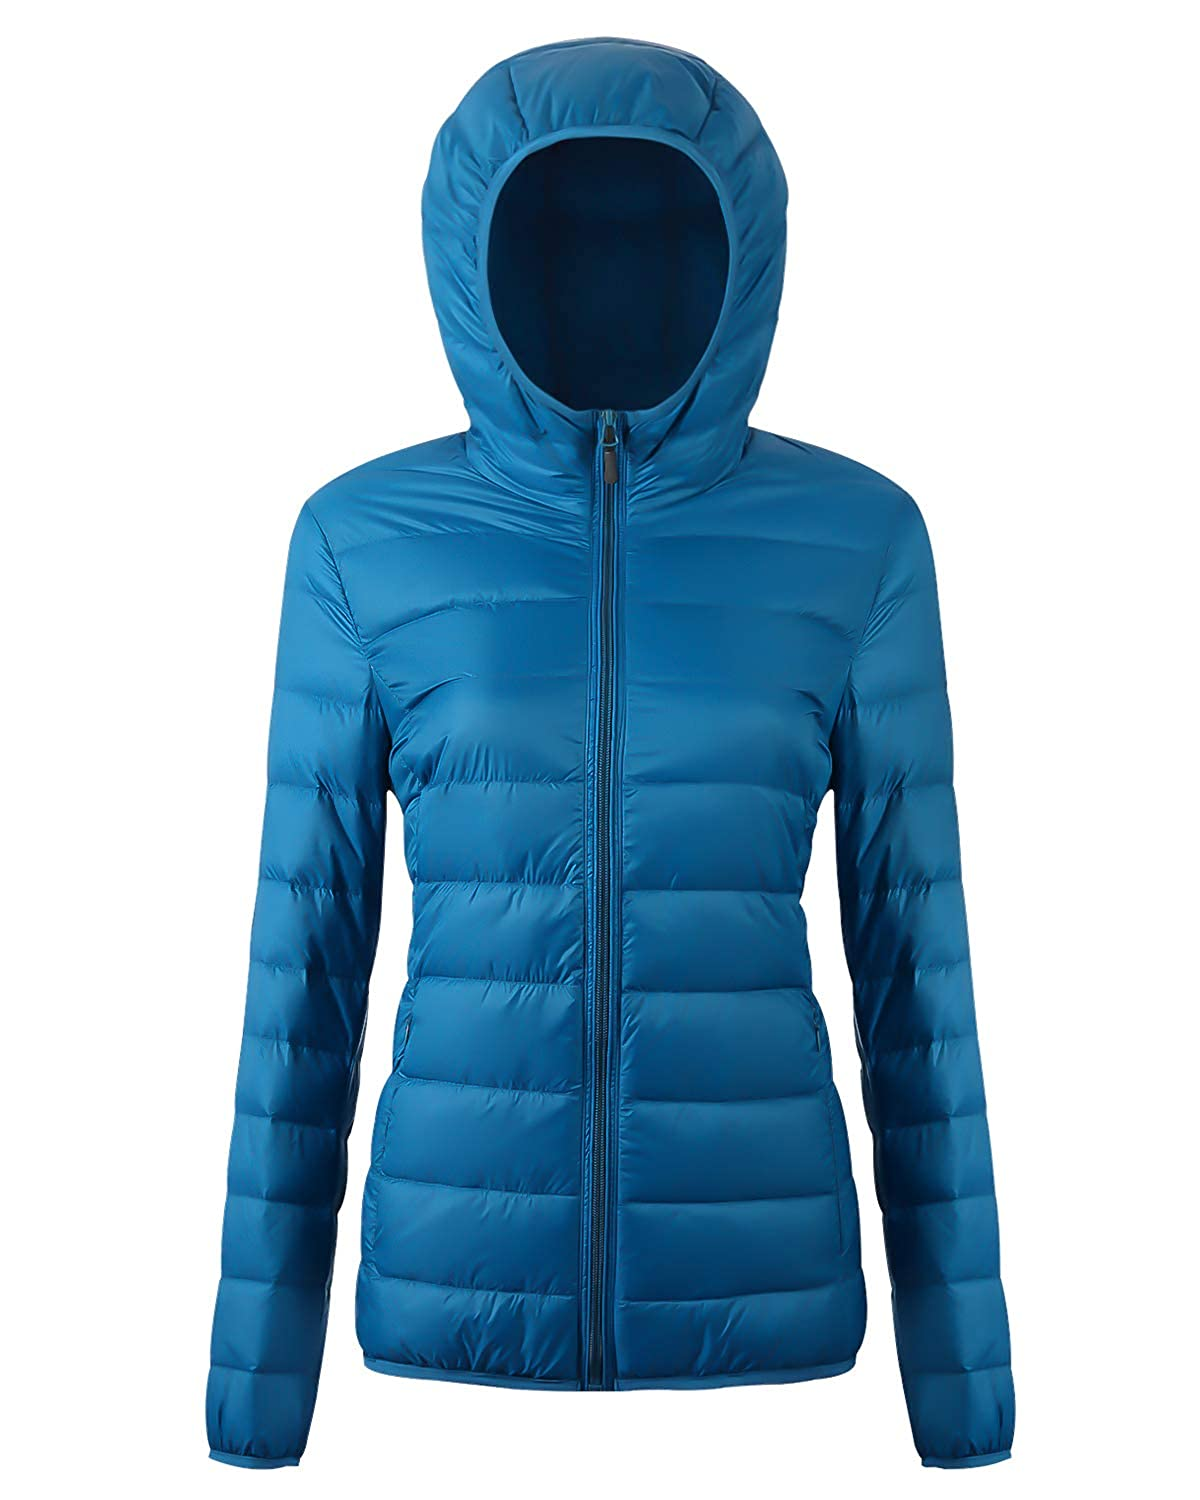 405929033d Amazon.com: Fantiny Women's Hooded Down Jacket Packable Ultra Lightweight  Outwear Puffer Coats with Travel Bag,UI18WYRF026,Acid.Blue,M: Clothing